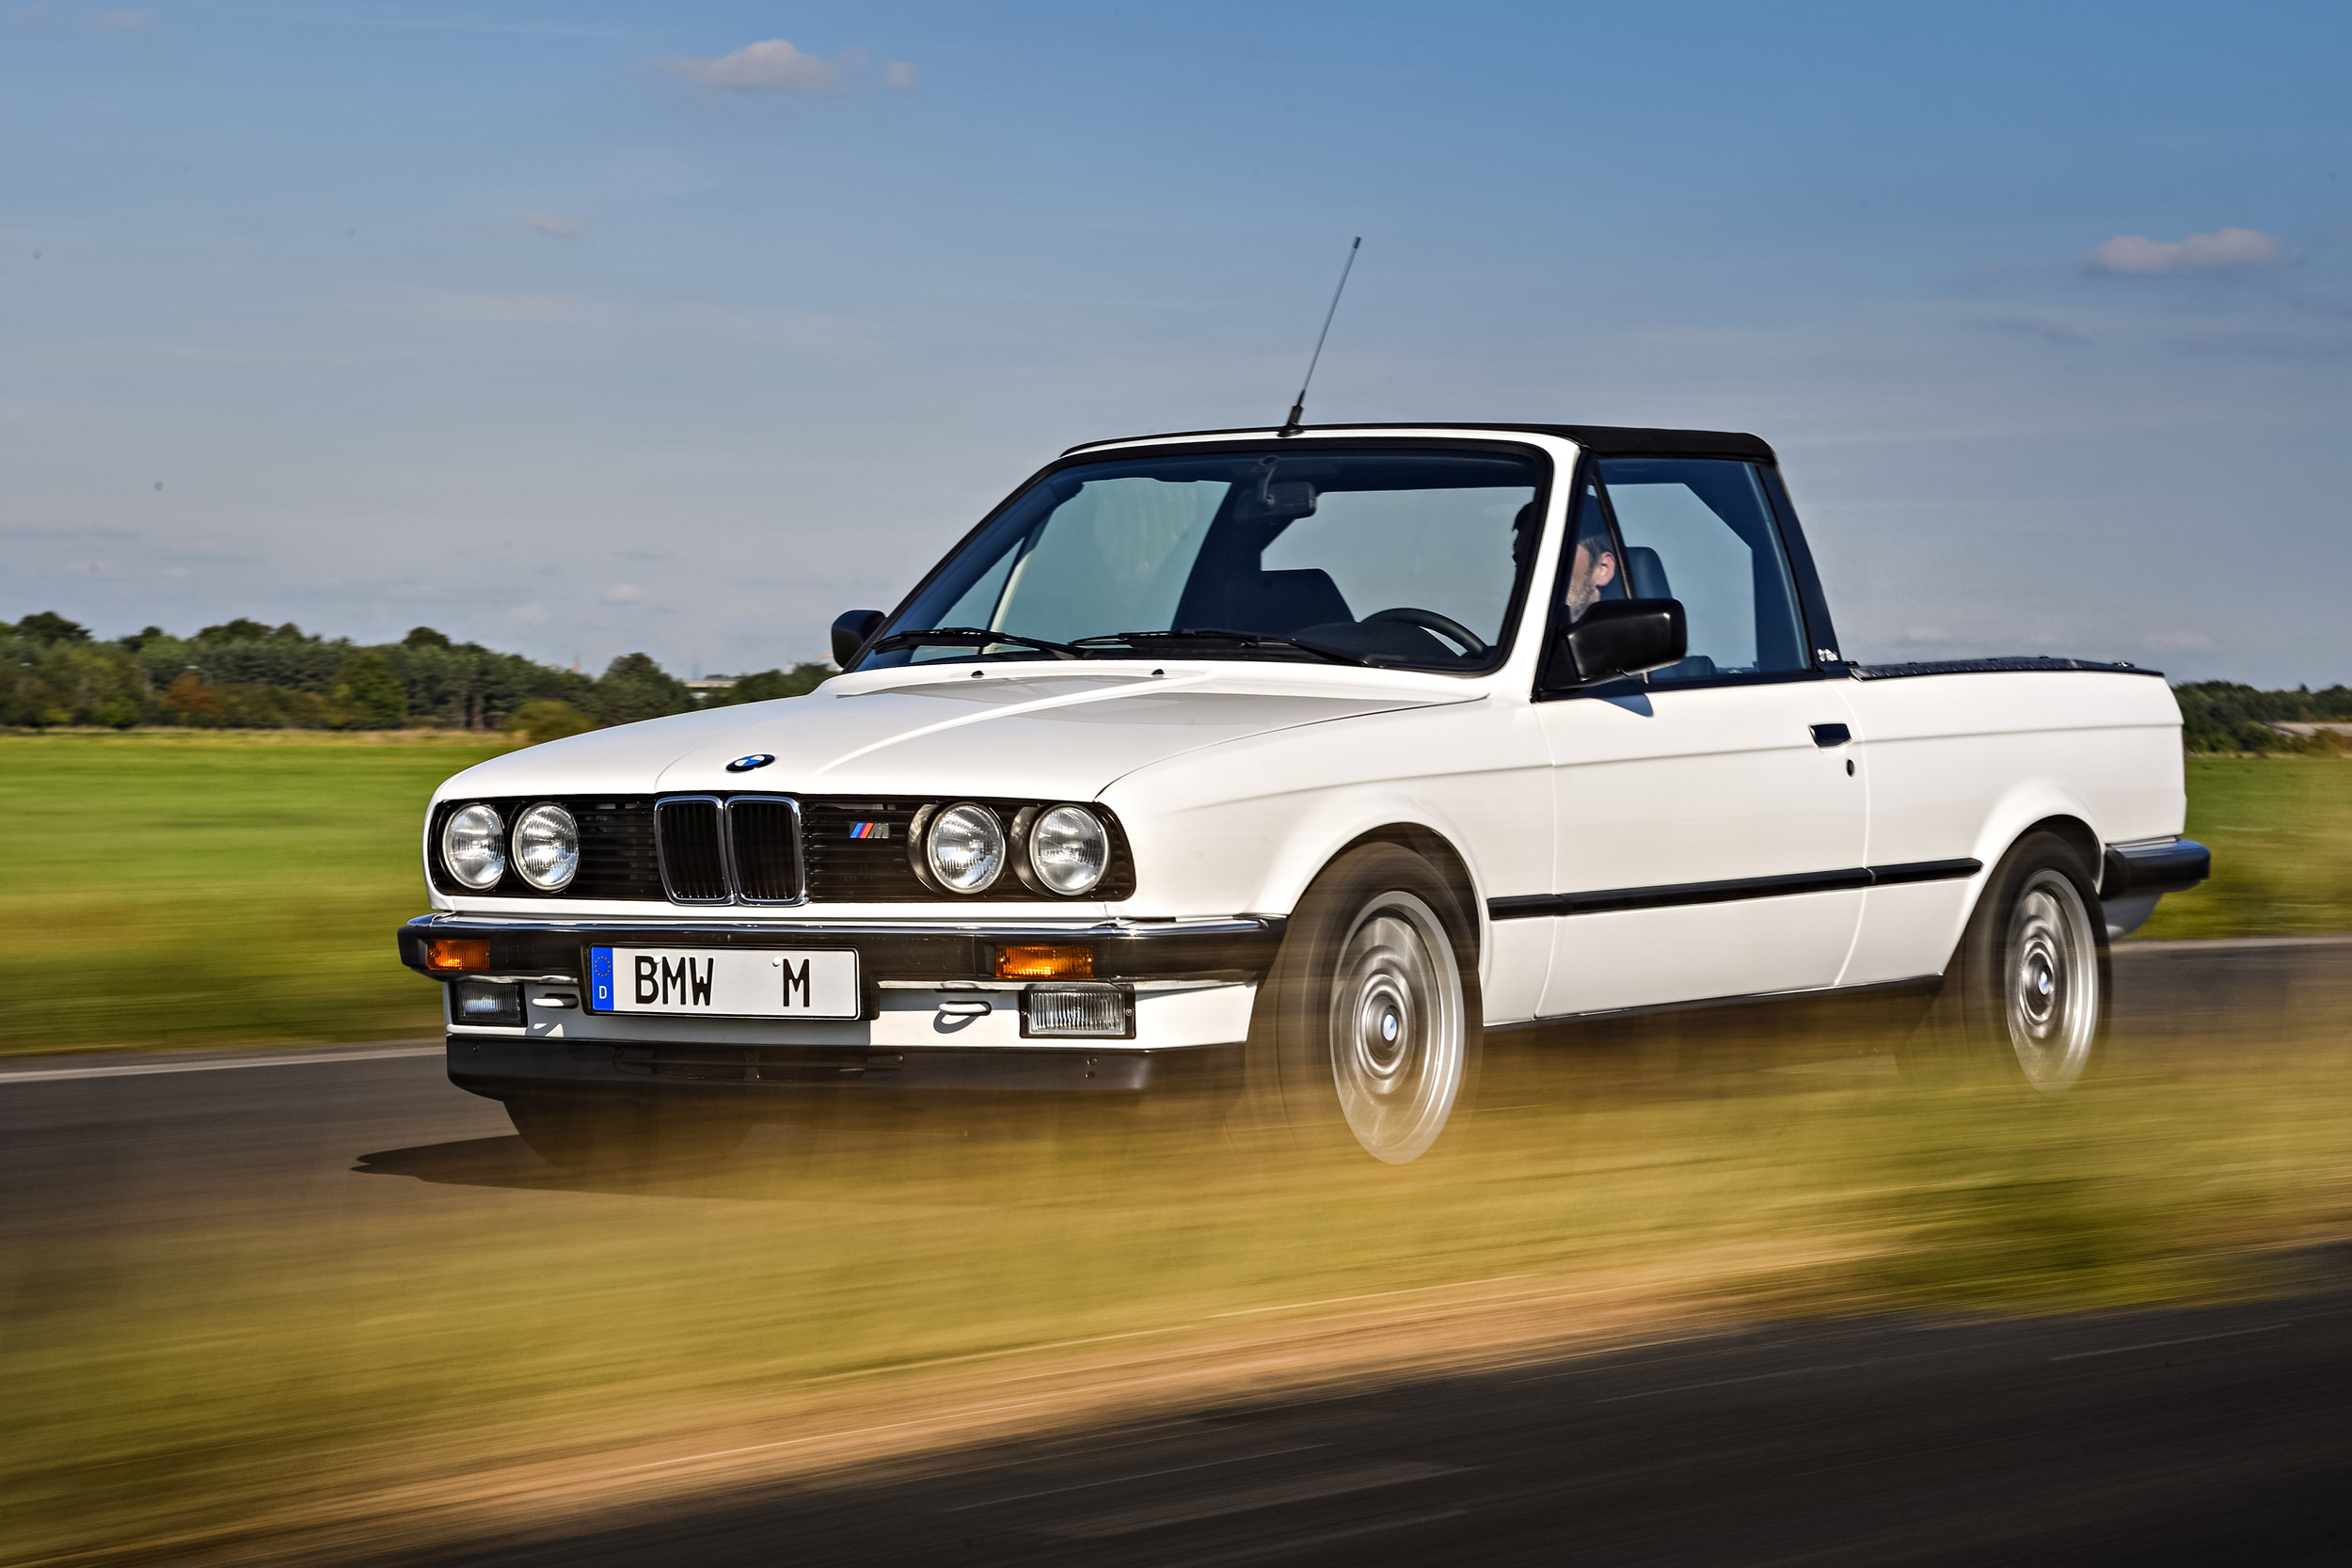 The E30-based M3 pickup was based on the 3 Series Convertible but was not fitted with the flared plastic fenders. It stayed in service for an incredible 26 years